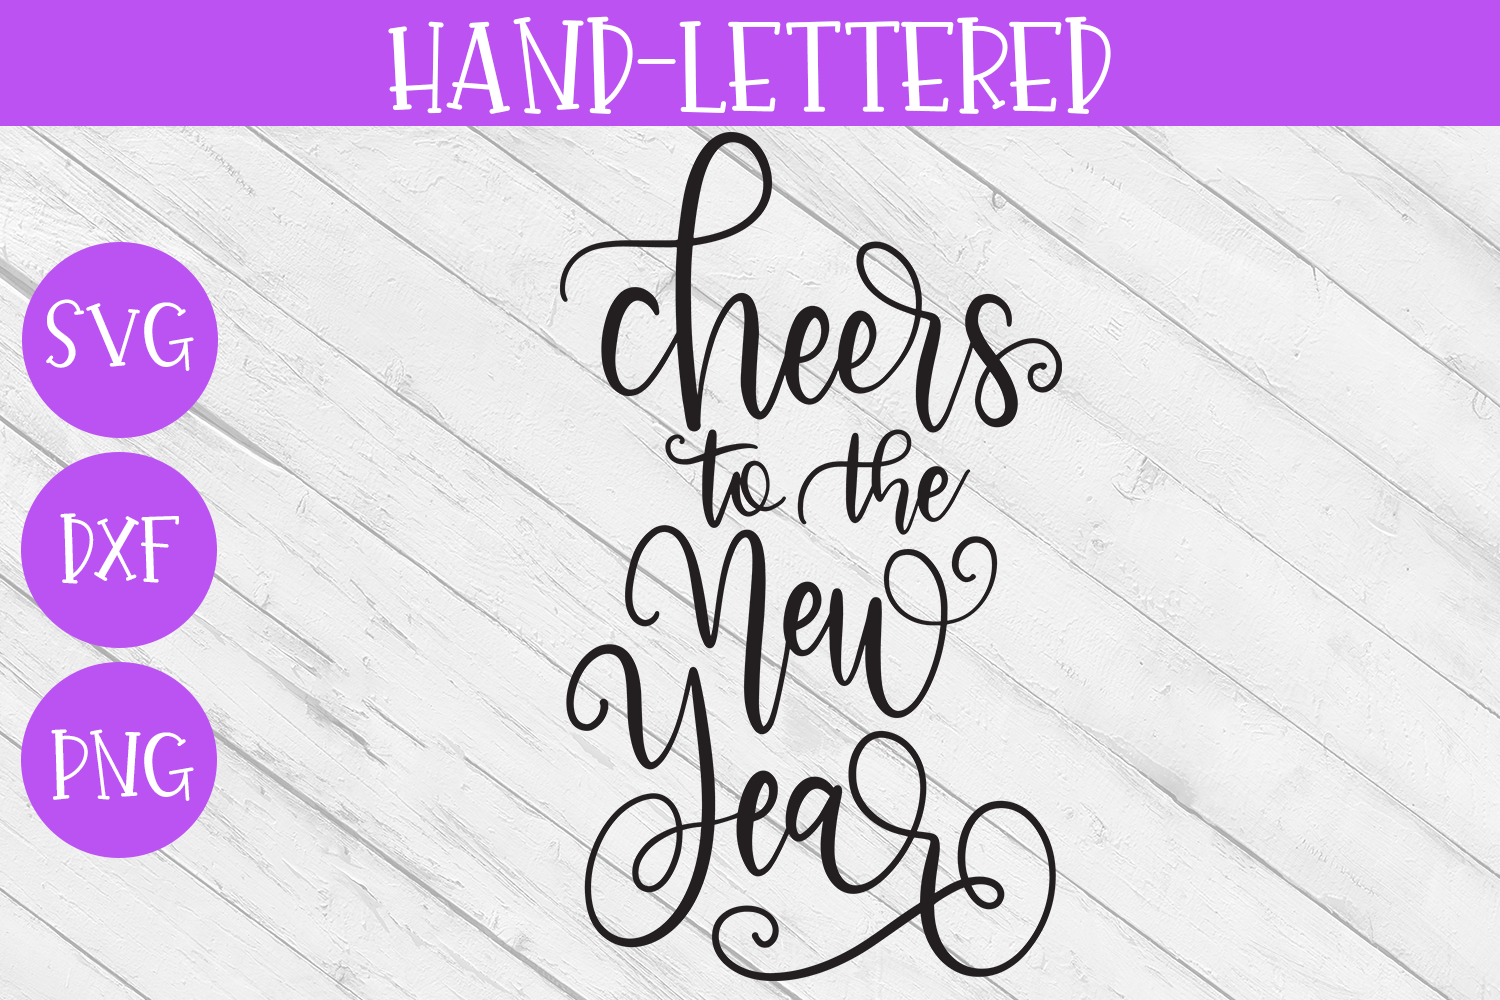 New Year SVG - Cheers to the New Year Hand-Lettered Cut File example image 2